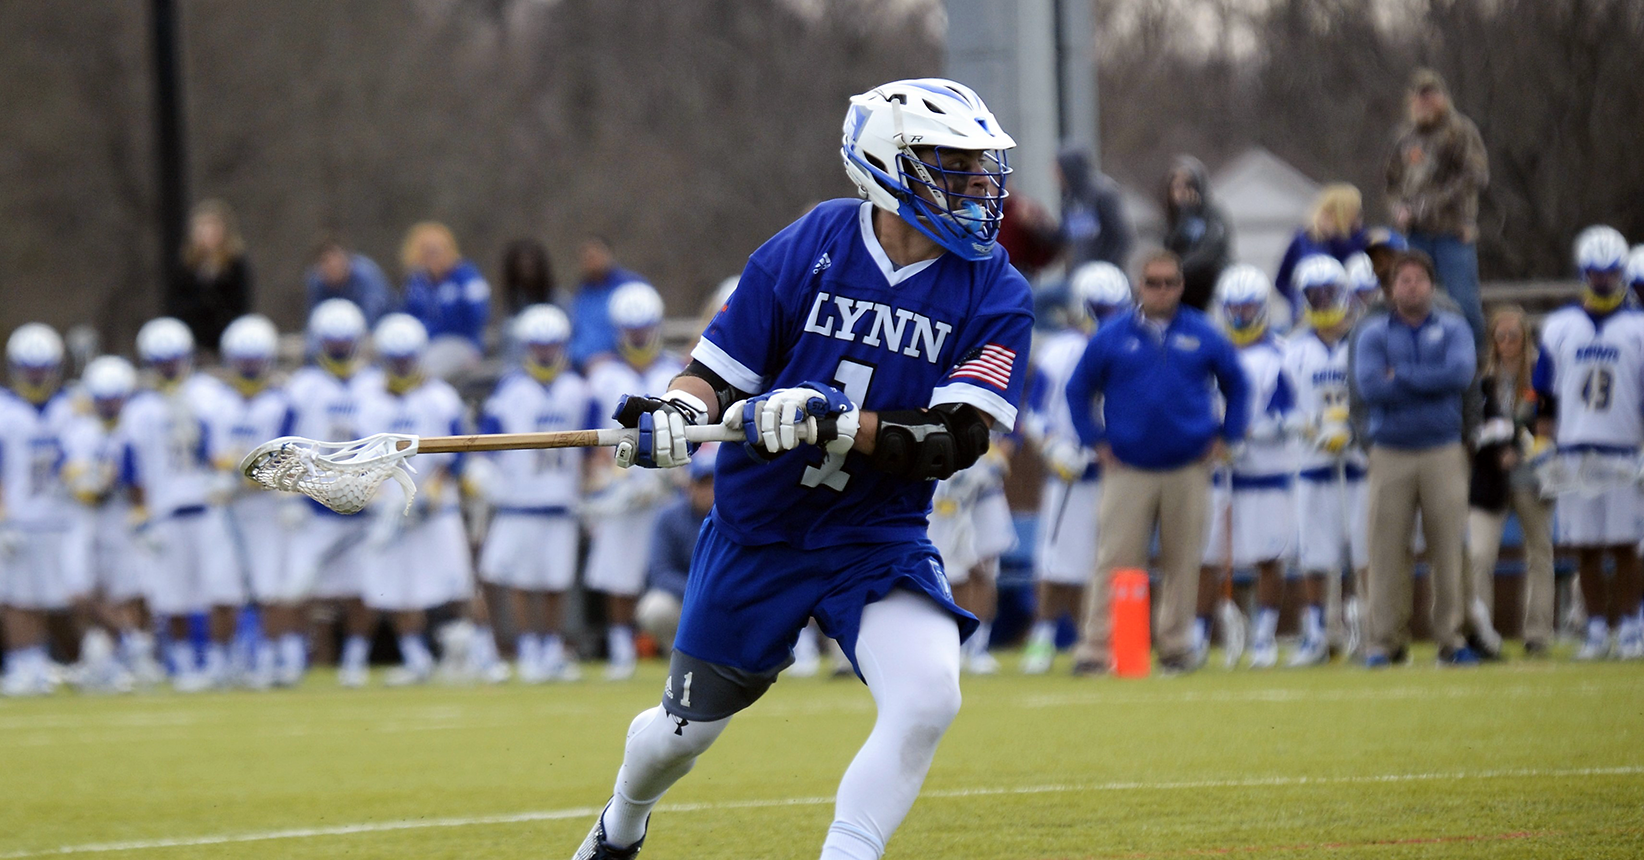 No. 18 Lacrosse Sinks No. 20 Rollins, 14-7